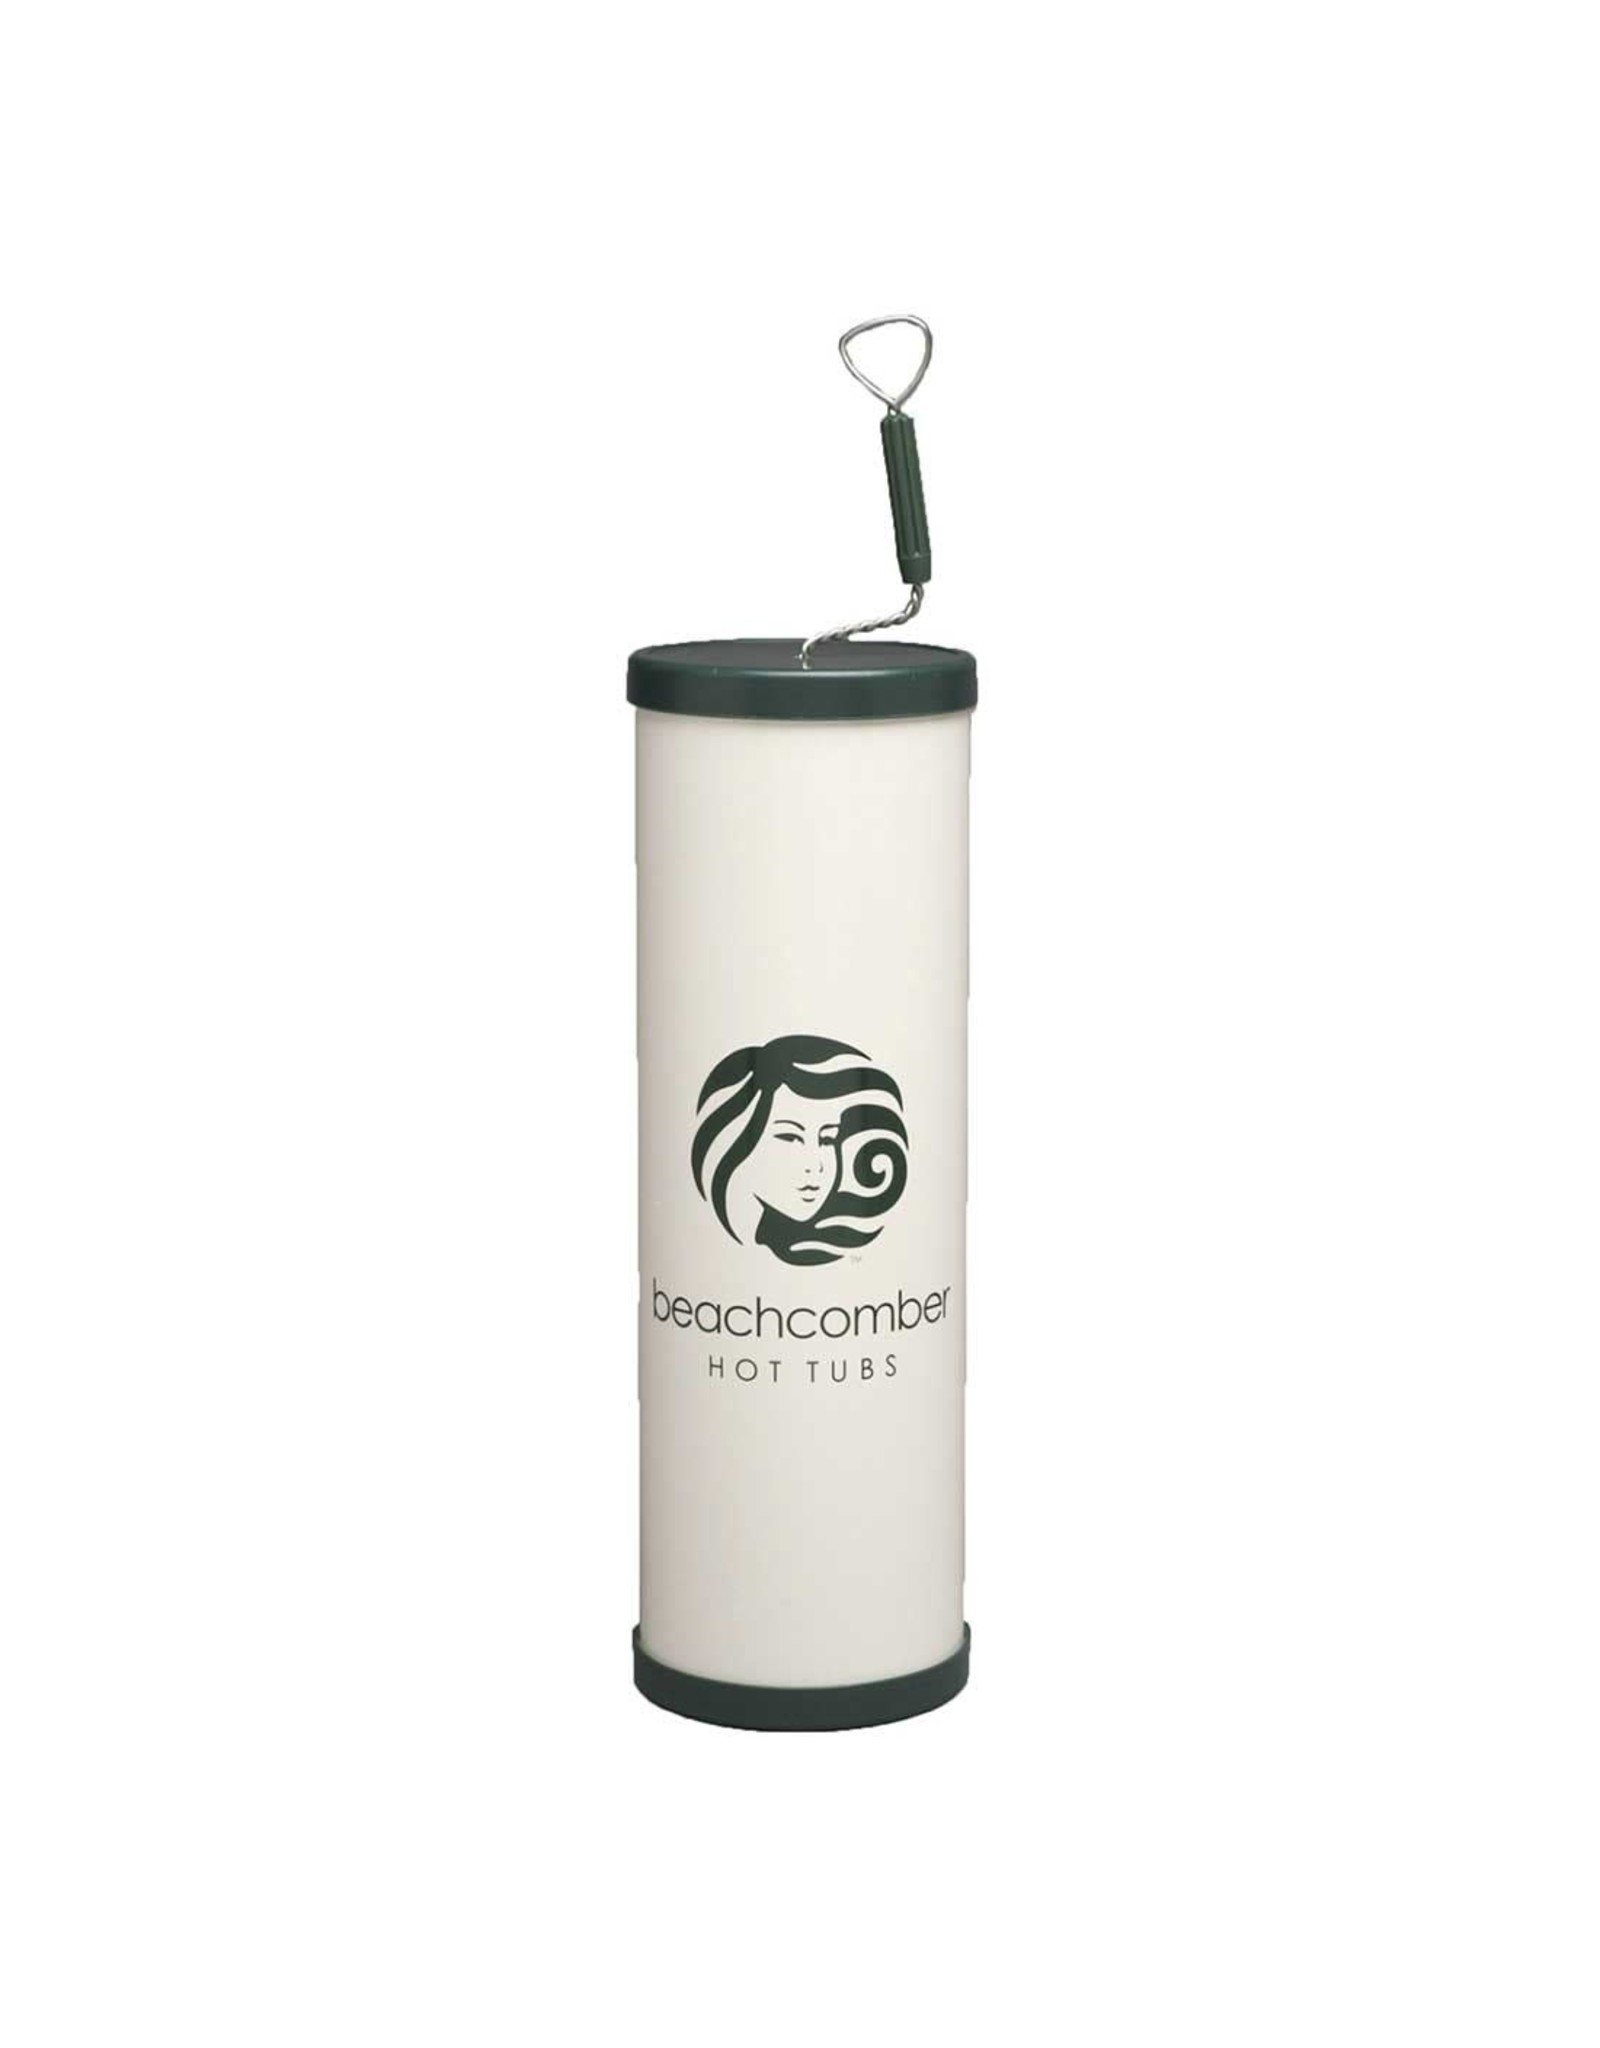 BEACHCOMBER Beachcomber cleaning canister